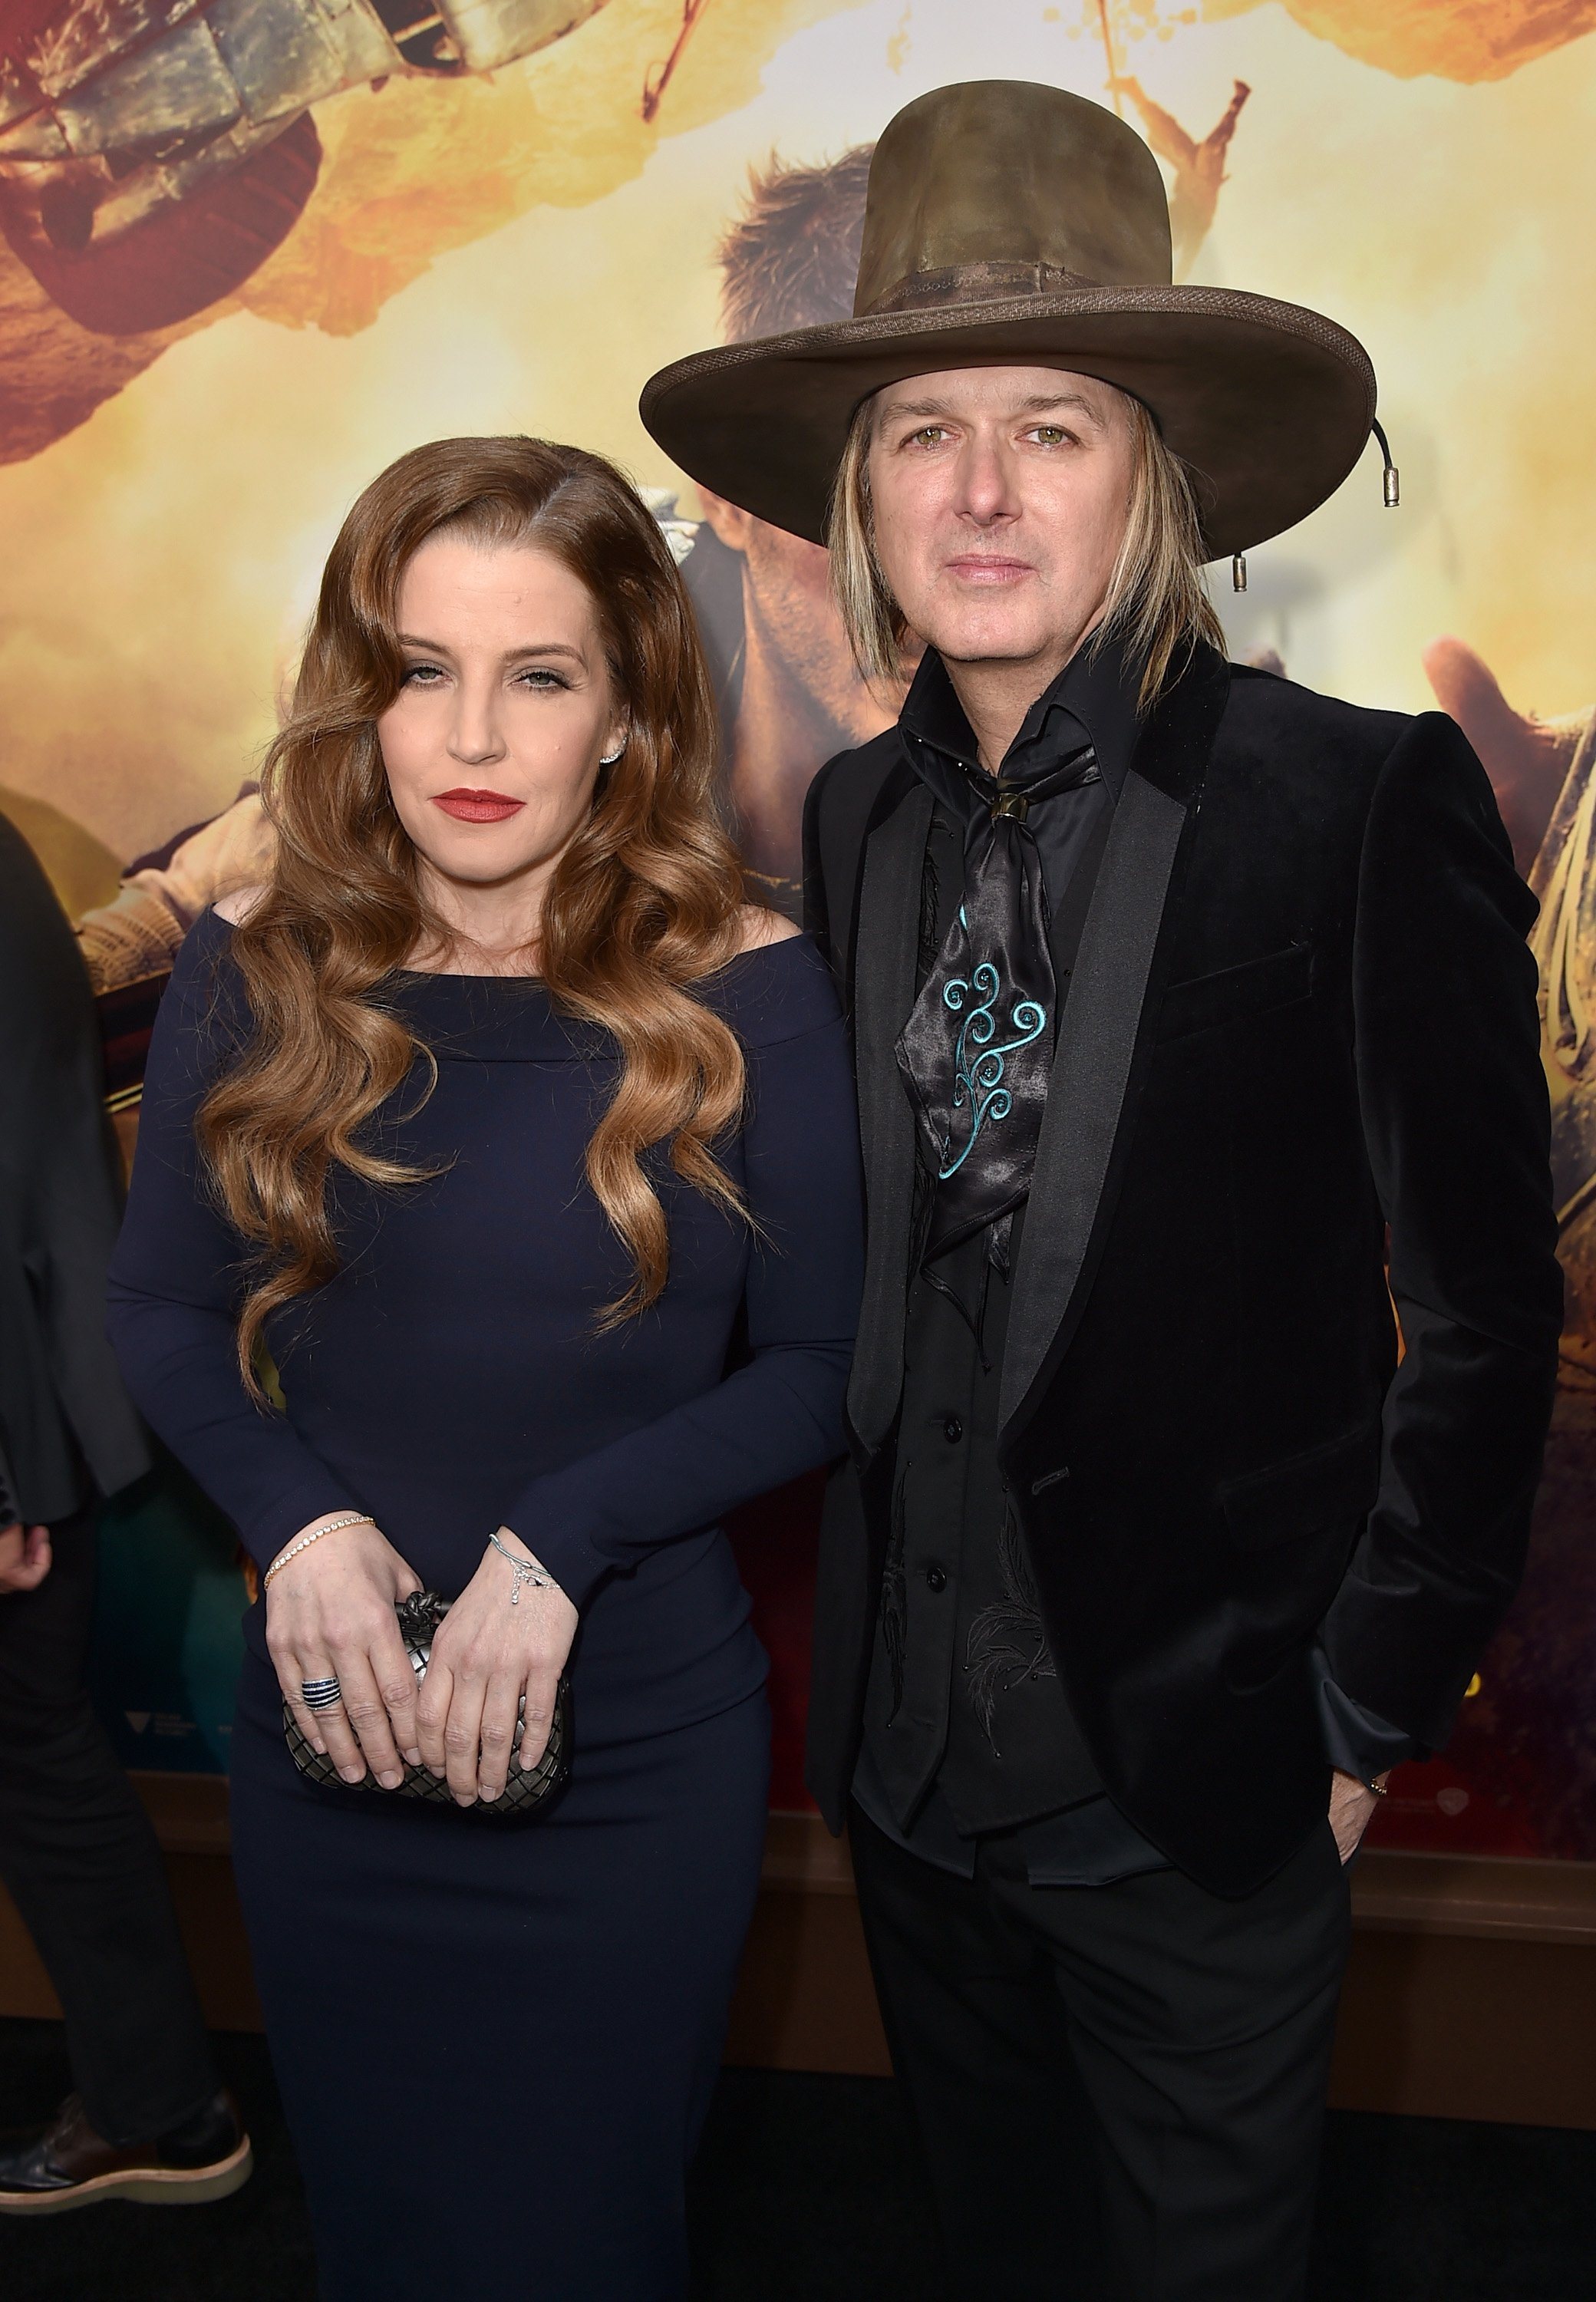 Lisa Marie Presley and Michael Lockwood on May 7, 2015 in Hollywood, California | Source: Getty Images/Global Images Ukraine